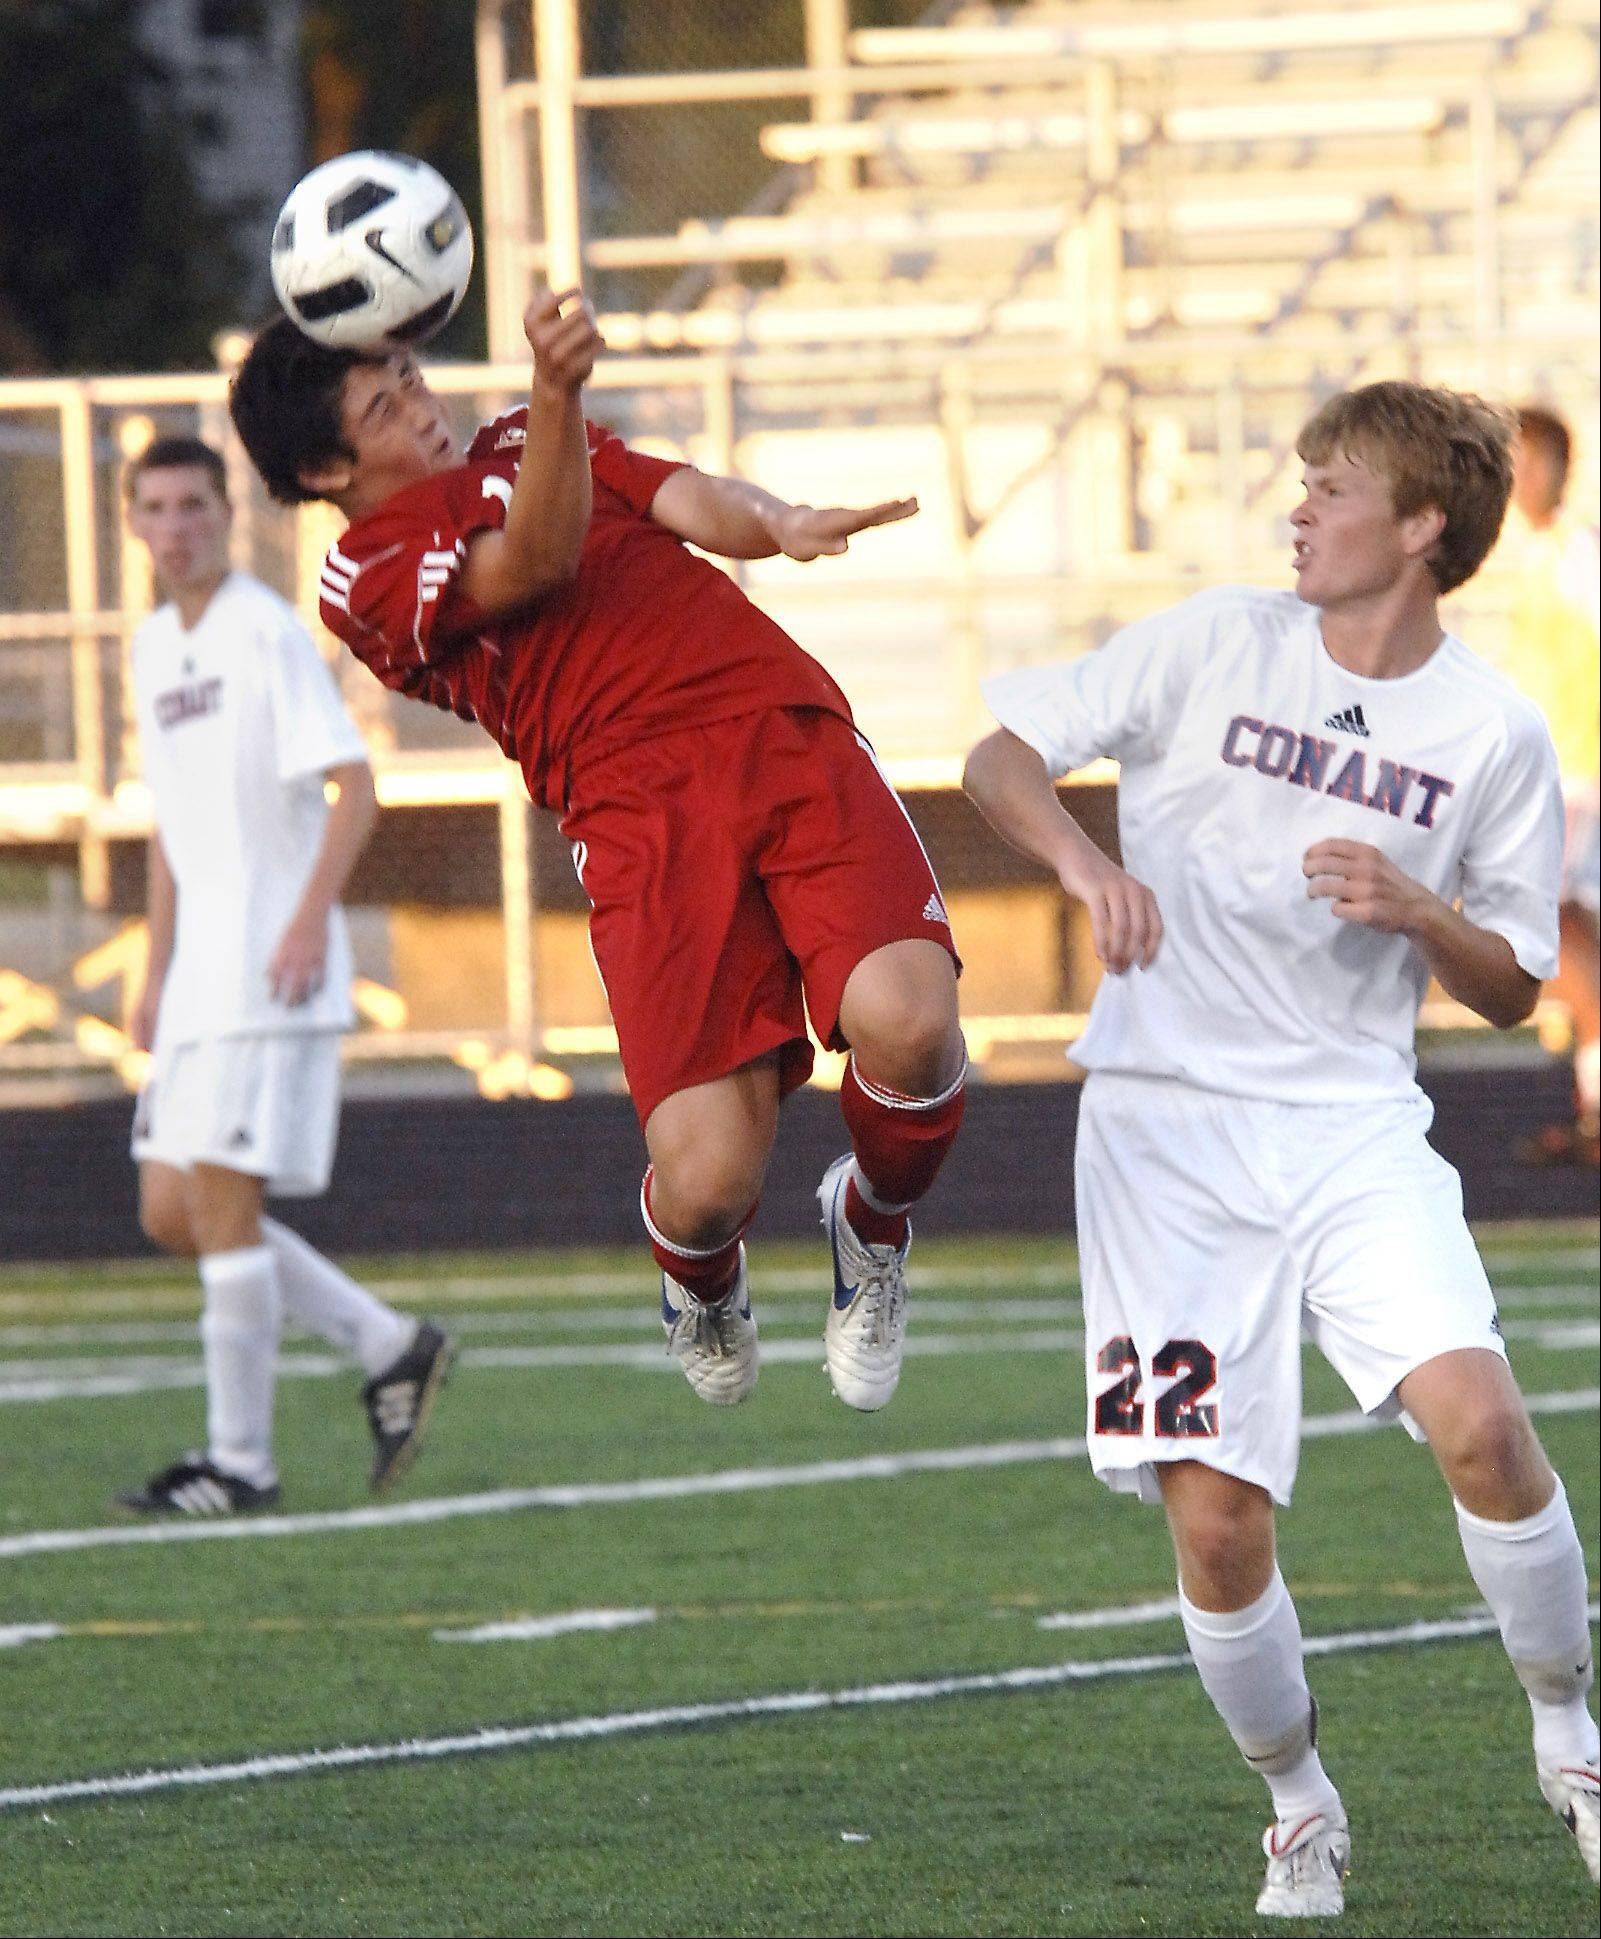 Palatine�s Tim Murphy, 10, gets off a header against Conant�s Jamie Blonde Monday at Conant.